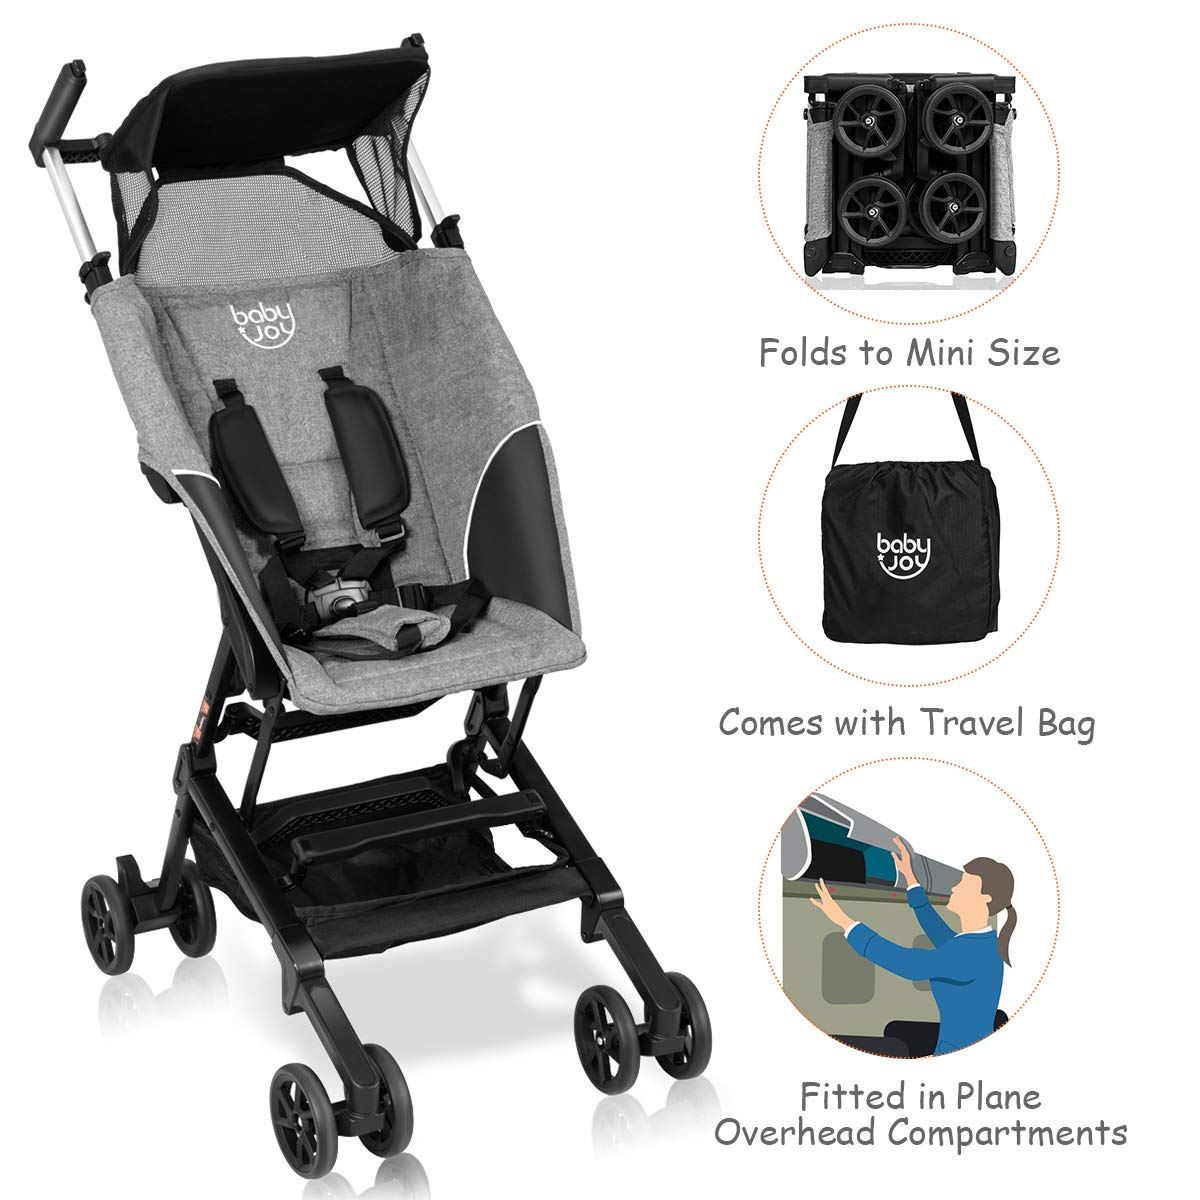 BABY JOY Pocket Stroller, Extra Lightweight Compact Folding Stroller, Aluminum Structure, Five-Point Harness, Easy Handling for Travel, Airplane Compartment, Includes Travel Bag, No Assembly, Gray